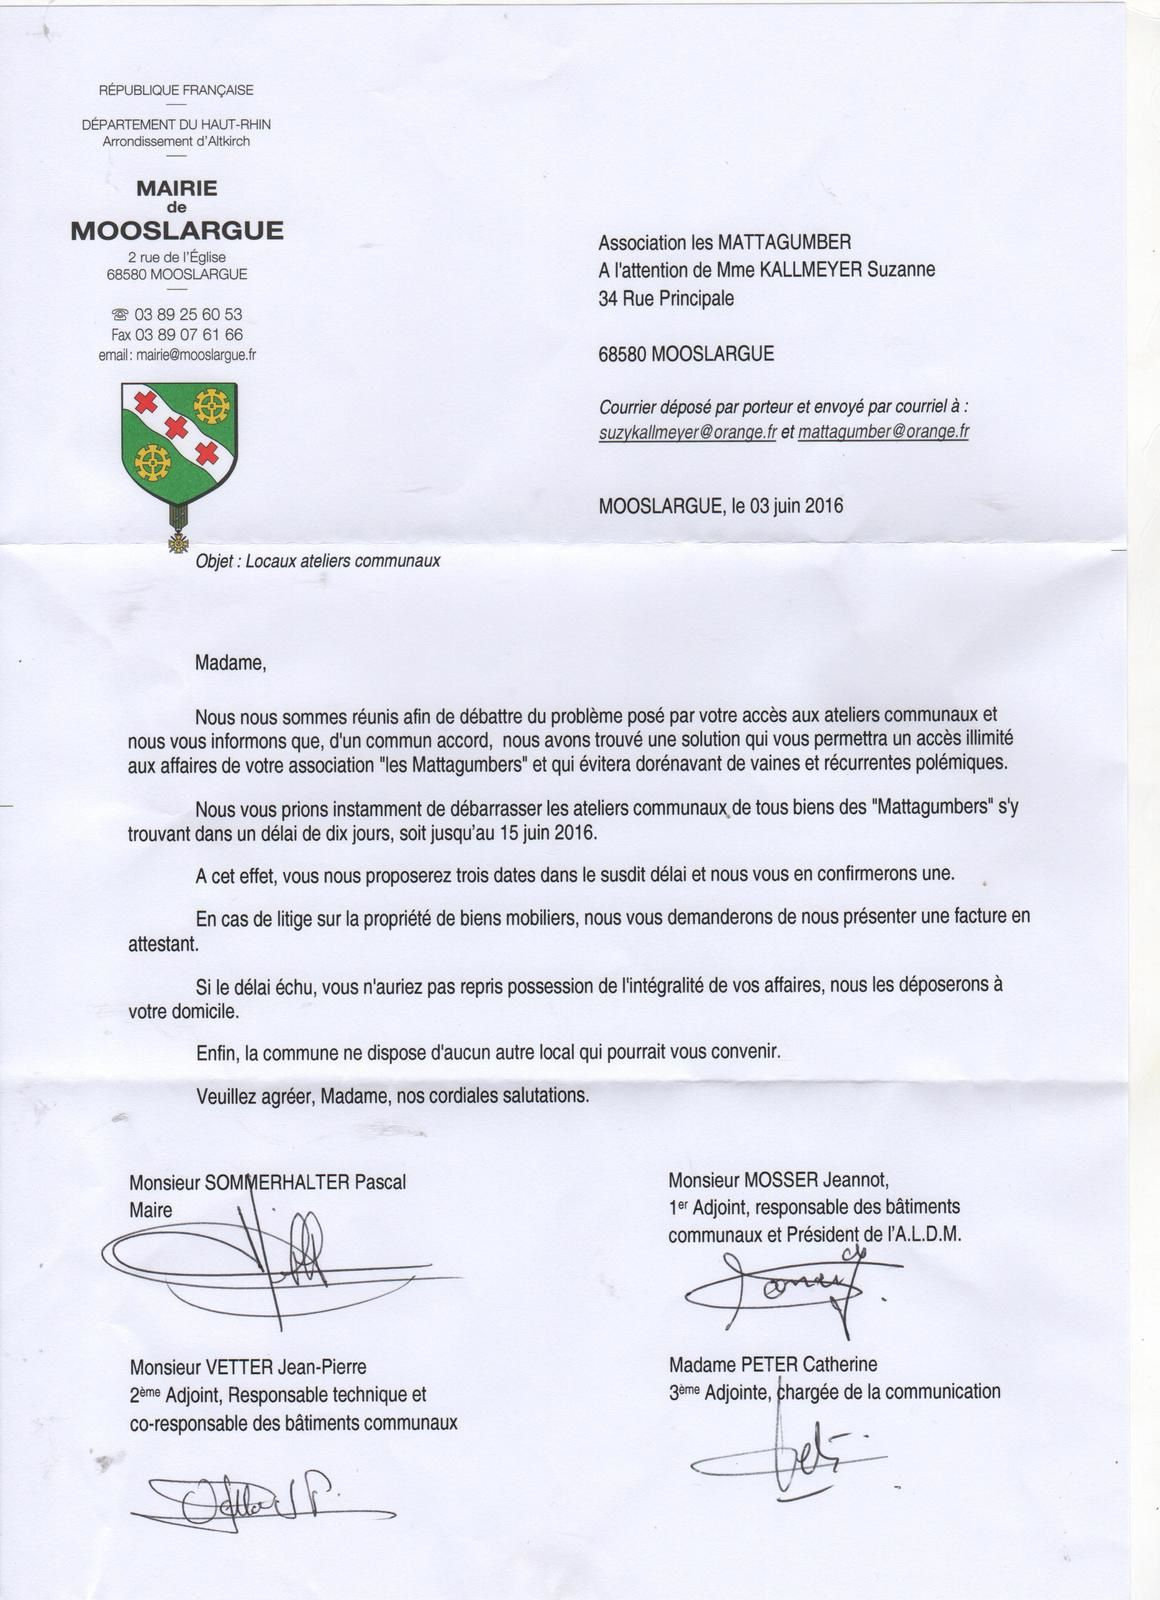 Courrier d'expulsion des Mattagumber de Mooslargue